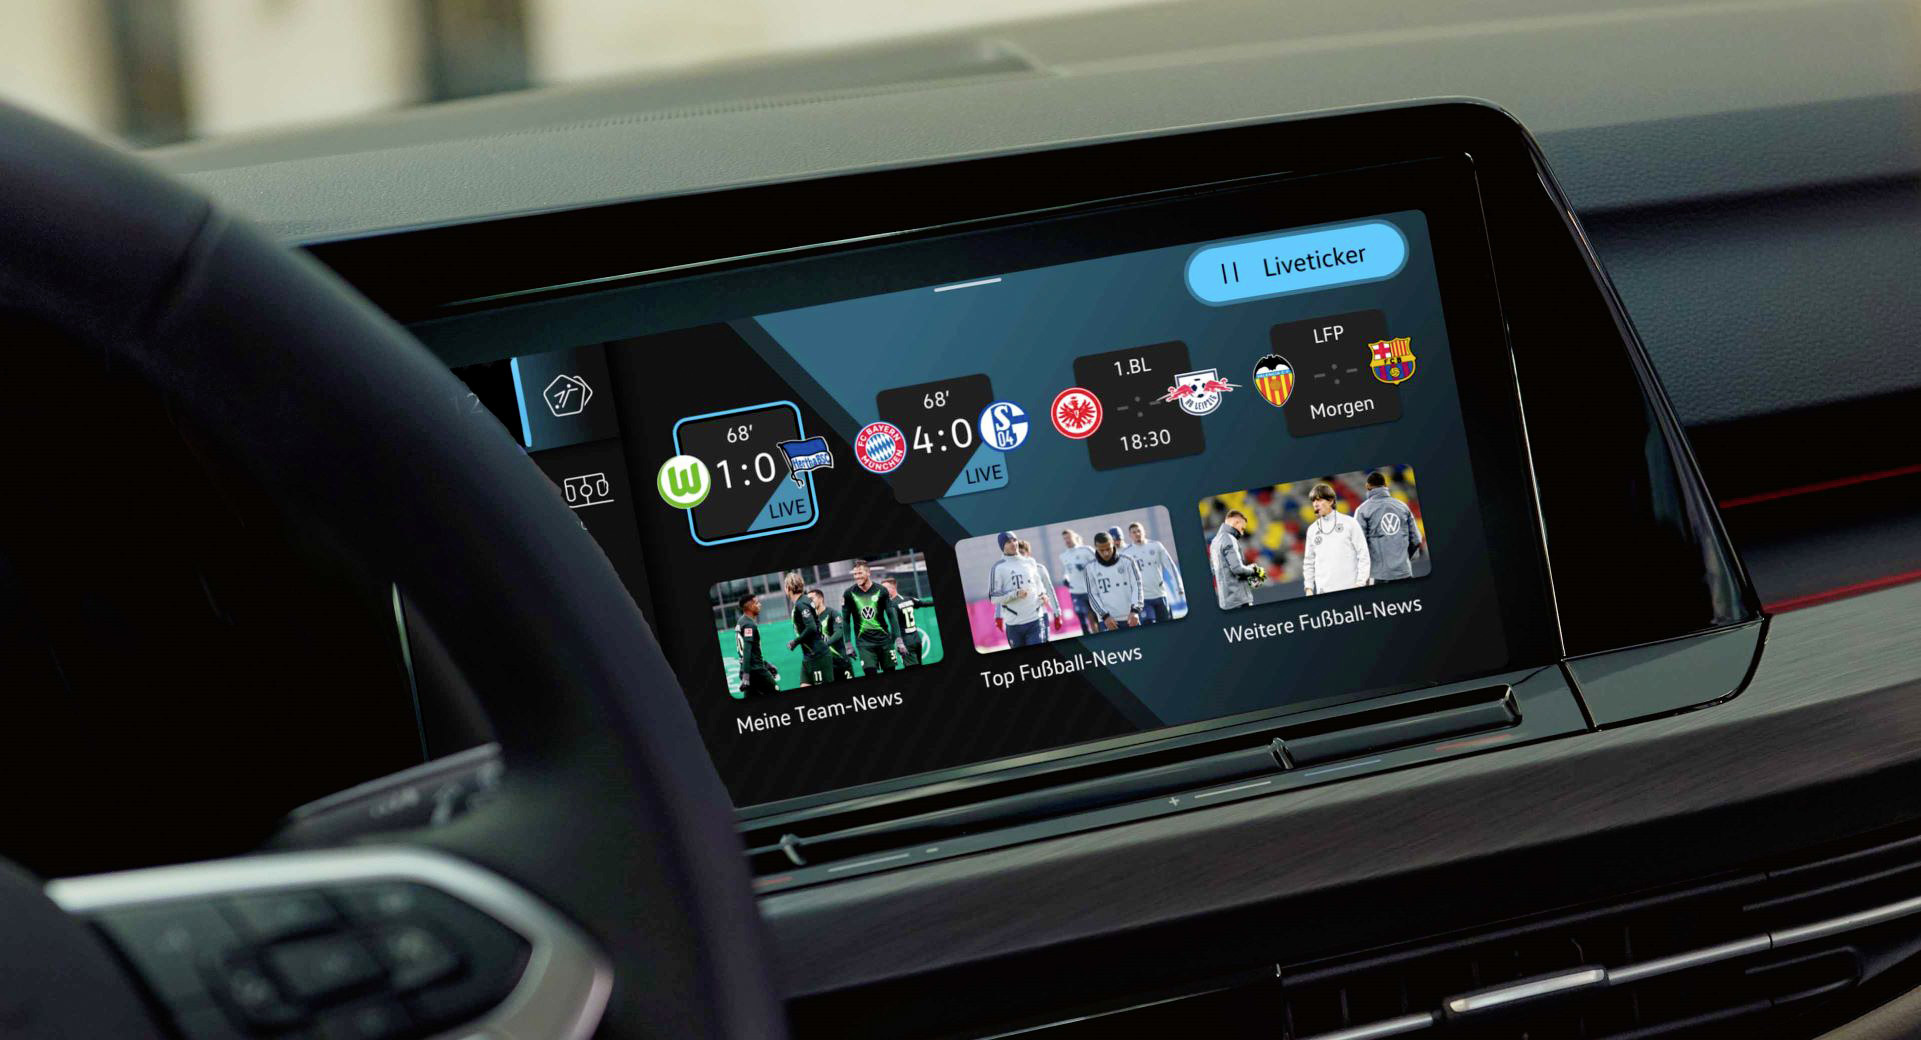 New 'We Score' App For Volkswagen Golf Drivers